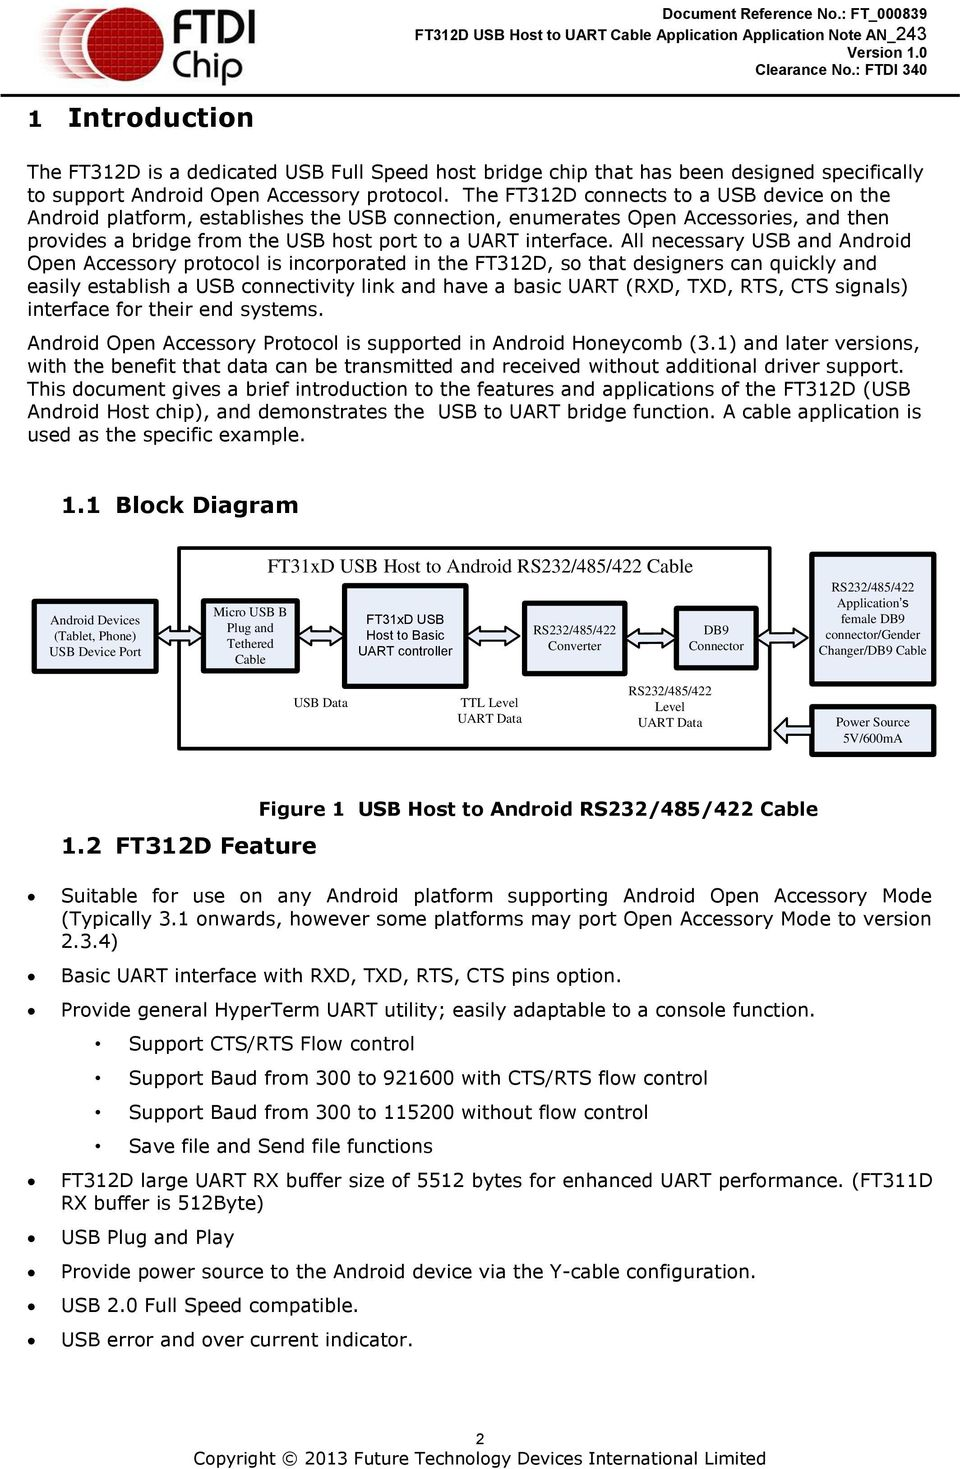 Application Note An 243 Ft312d Usb Host To Uart Cable Pdf Ftdi Schematic All Necessary And Android Open Accessory Protocol Is Incorporated In The So That